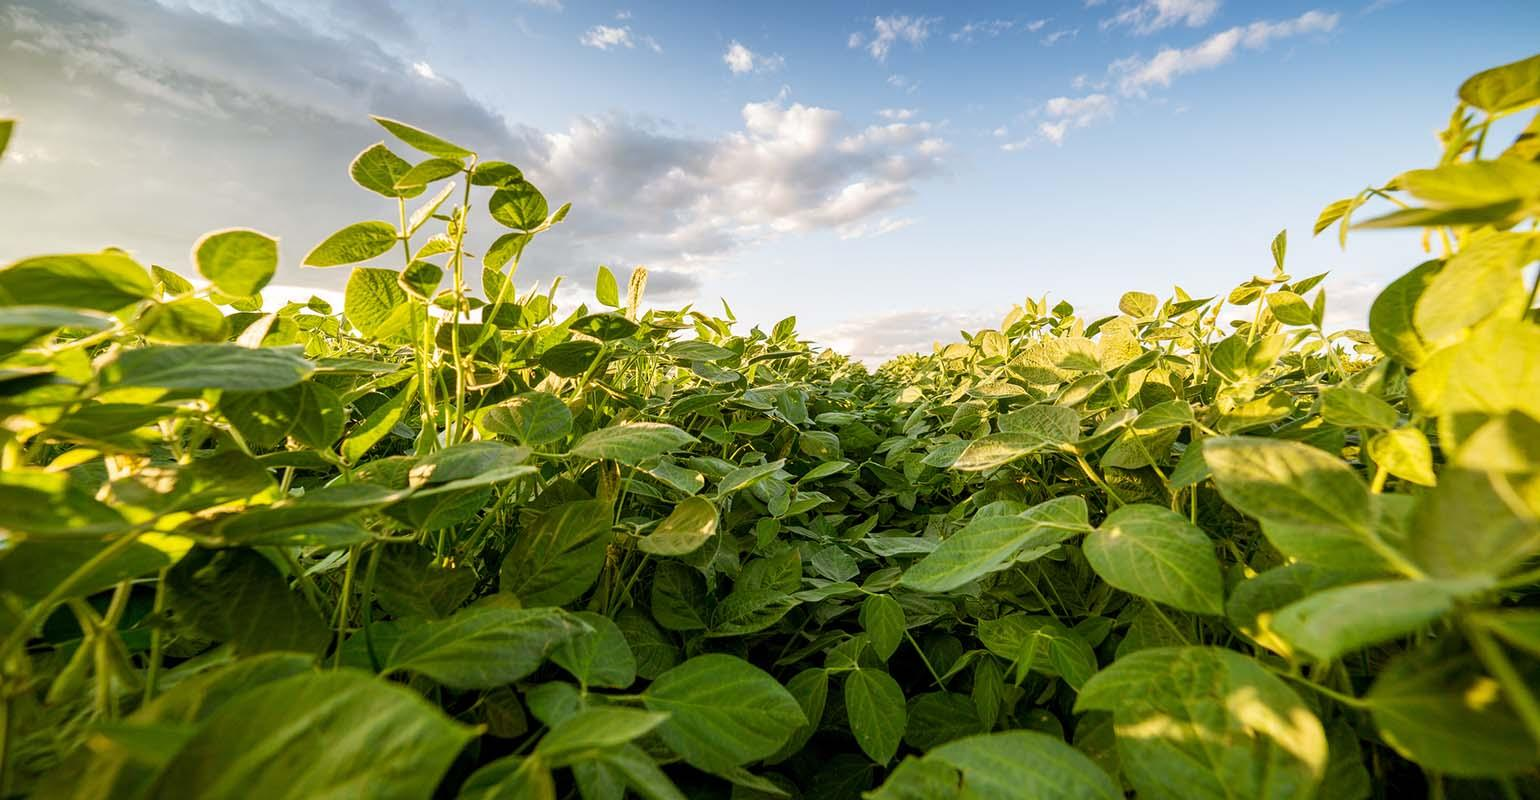 Ripening soybeans